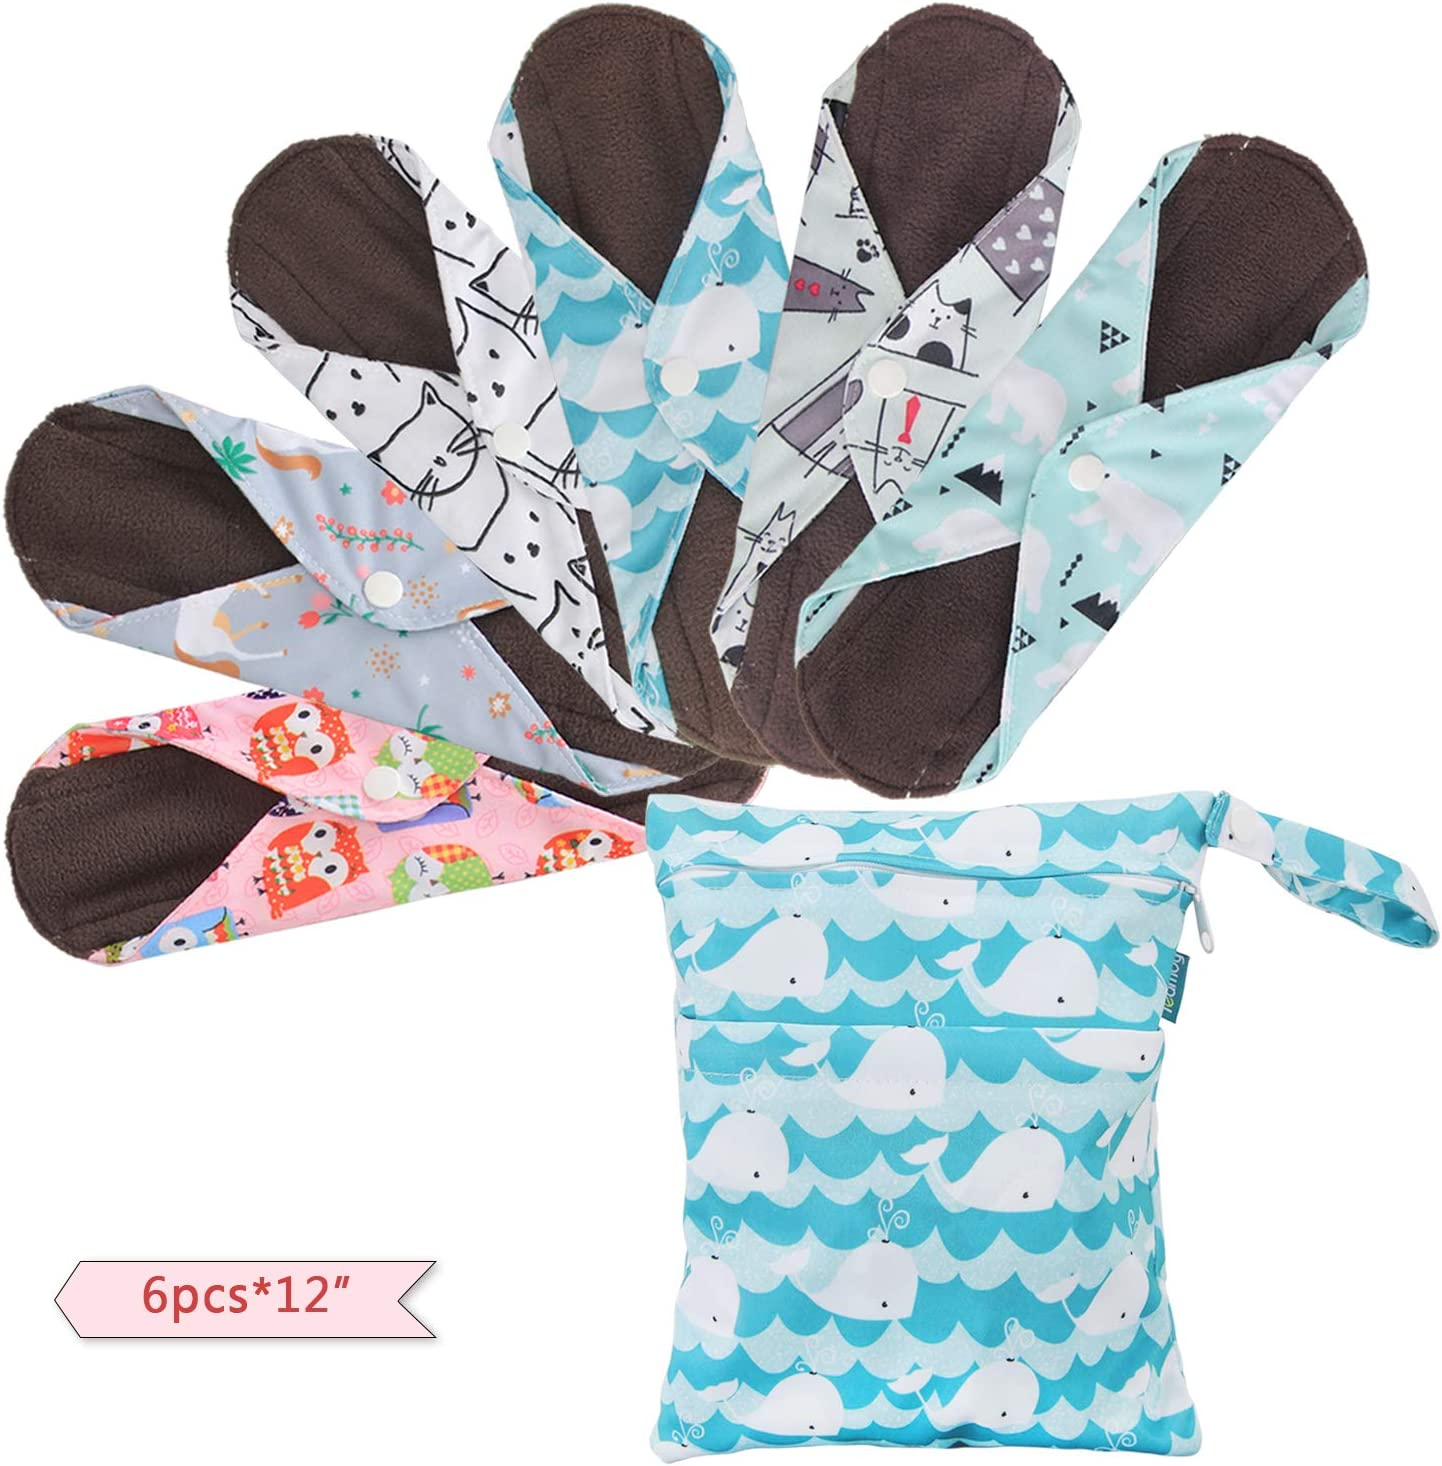 Teamoy 6Pcs 12 Inch Reusable Sanitary Pads, Cloth Menstrual Pads Washable Period Pads with Charcoal Bamboo Absorbency Layers, Fit for General Flow (Cute Whale, Large)